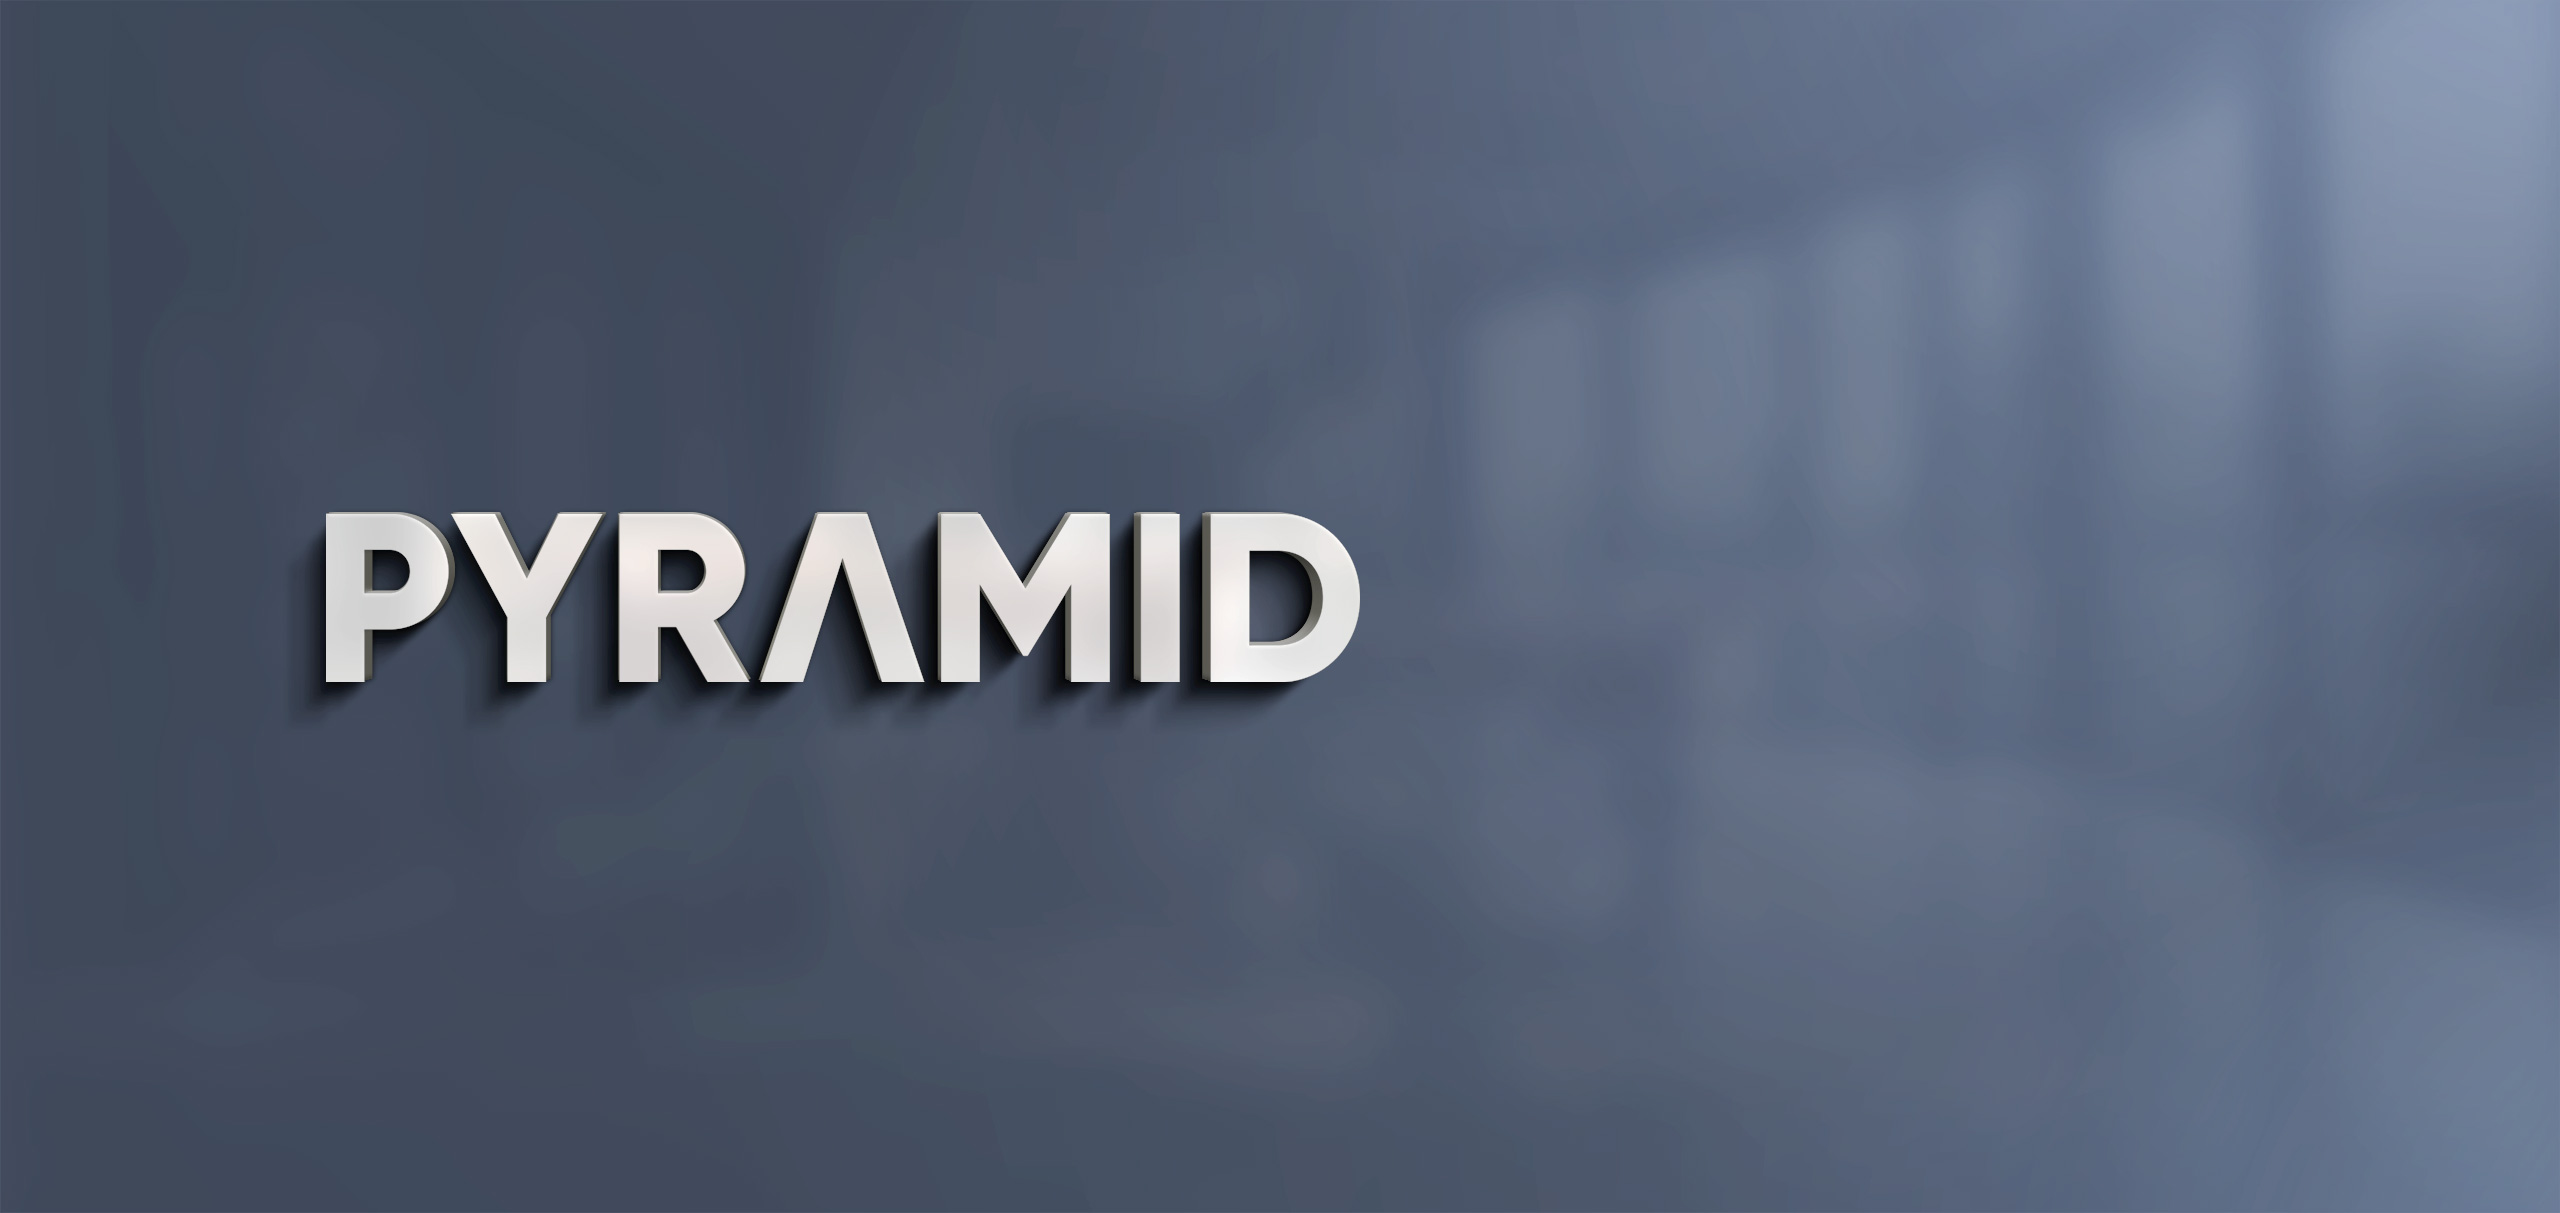 Pyramid Logo in a new look!